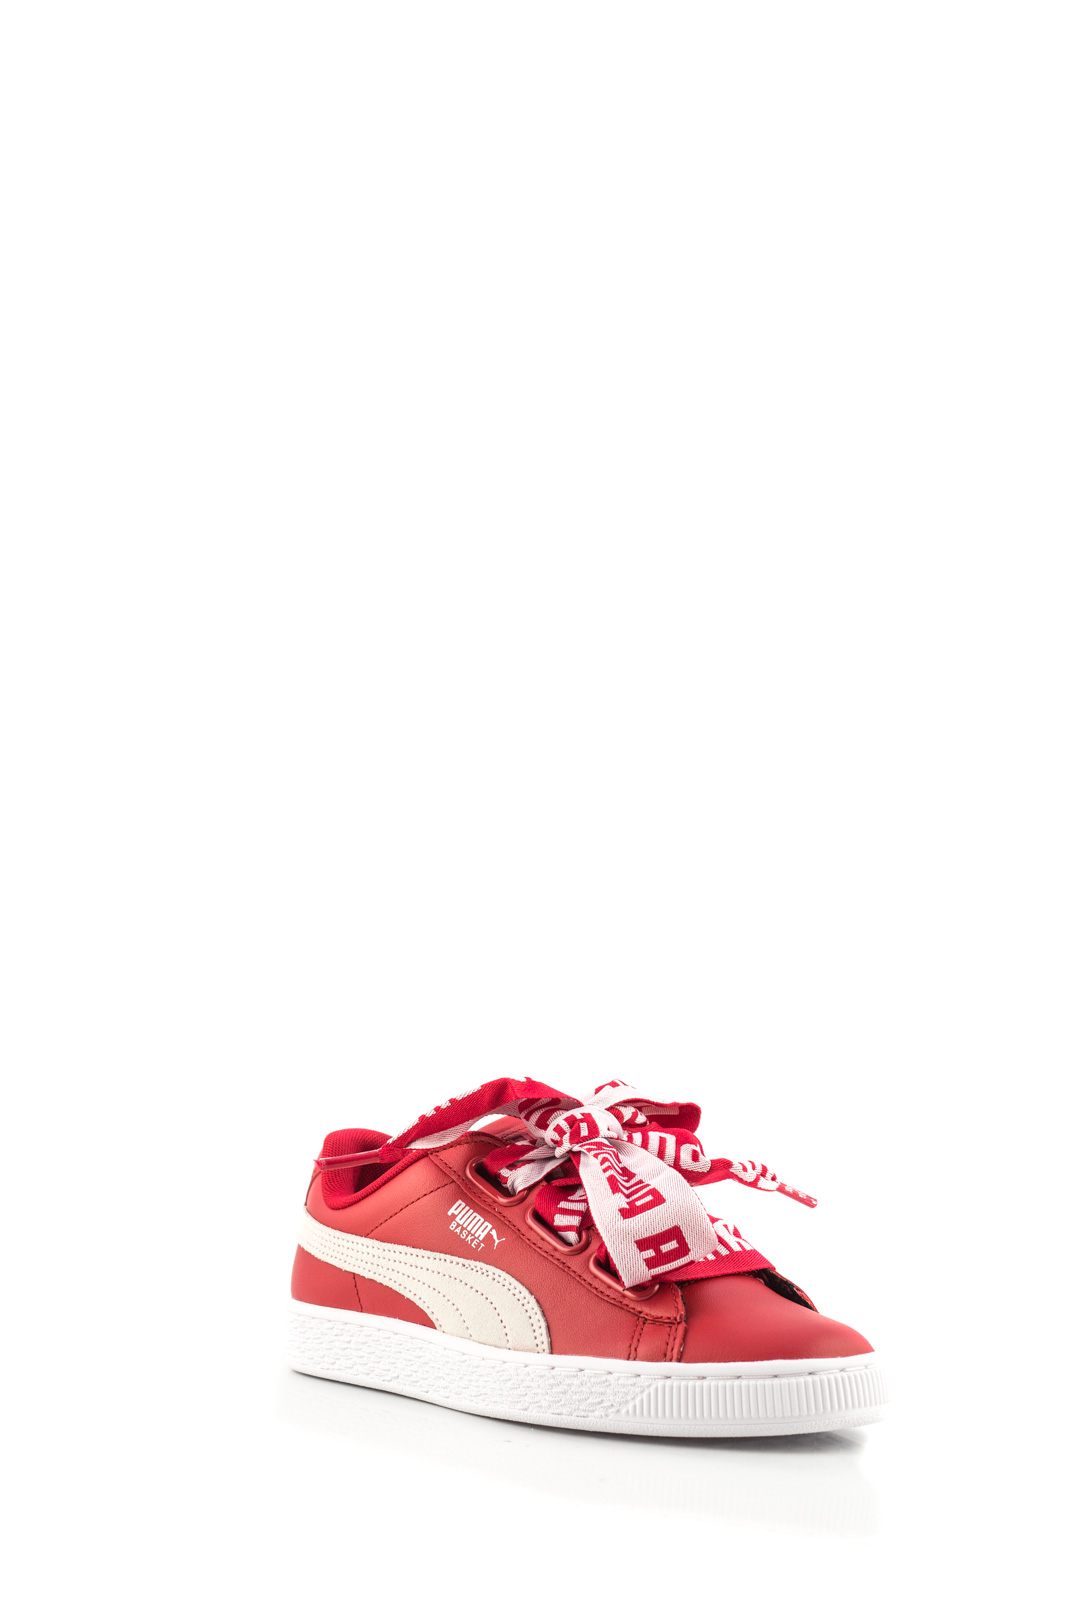 Puma - Basket Heart Red